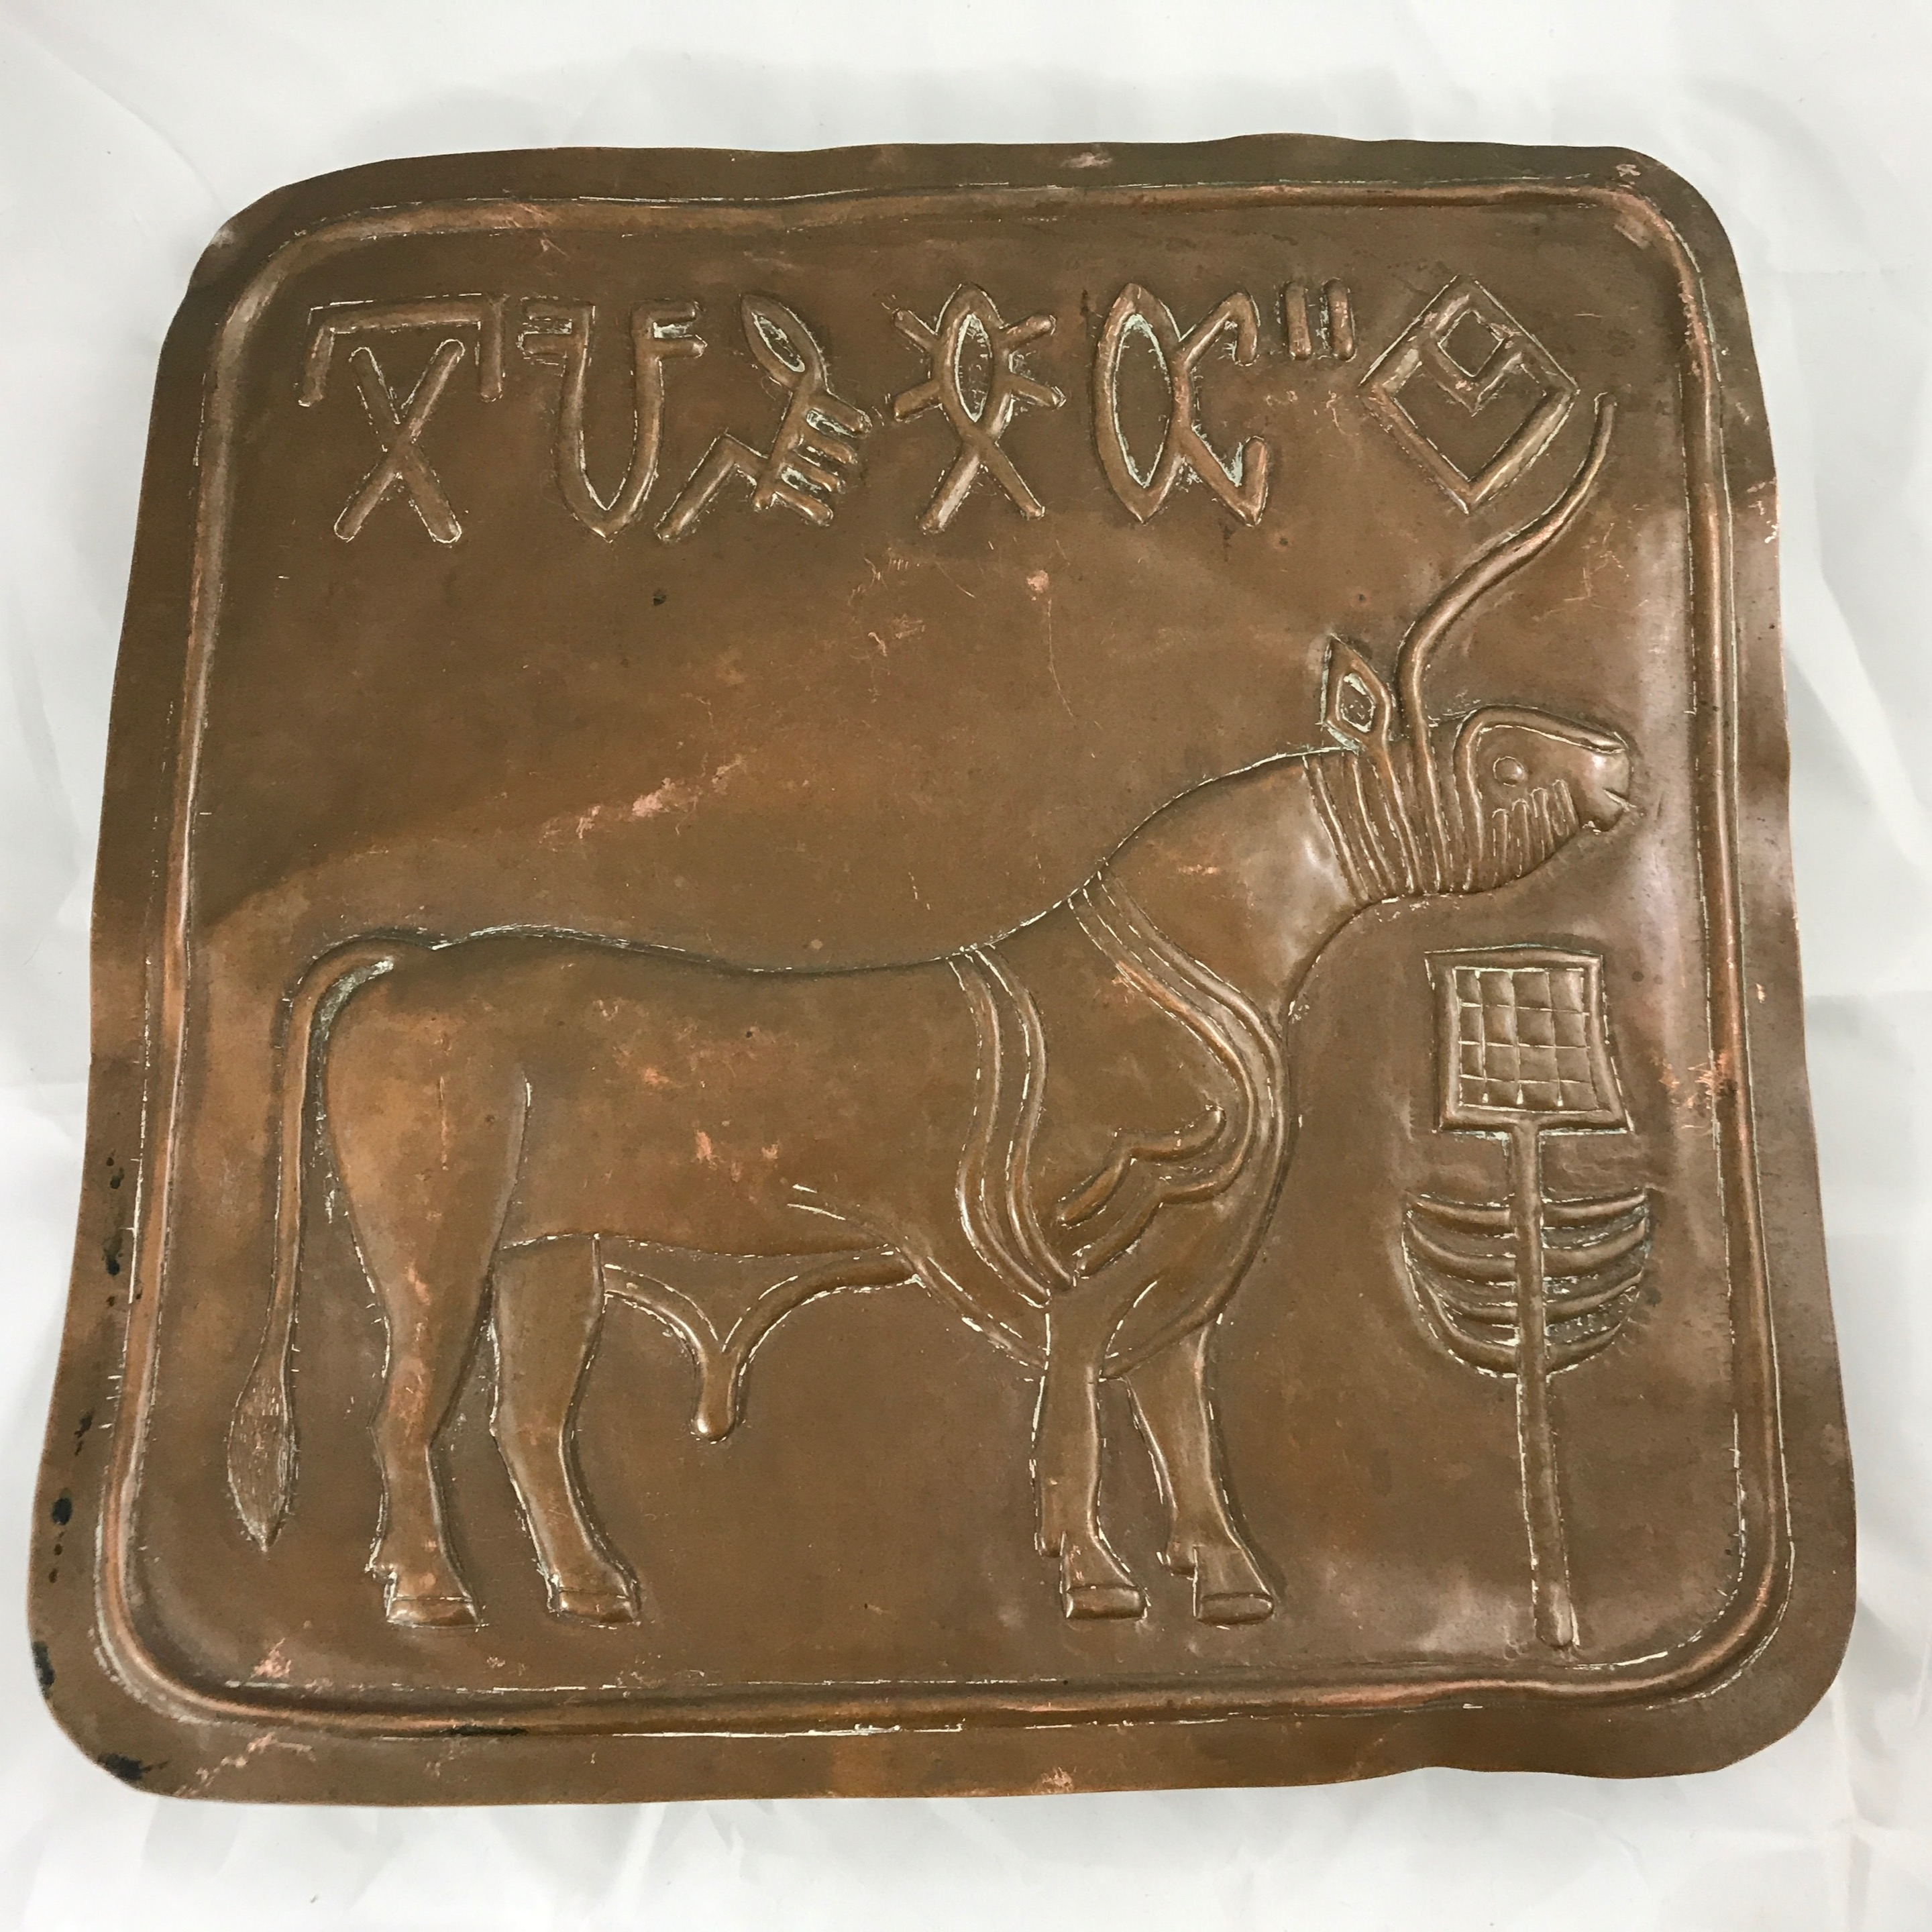 Ethnographic Copper Wall Art - Wild Things Antiques within Trendy Copper Wall Art